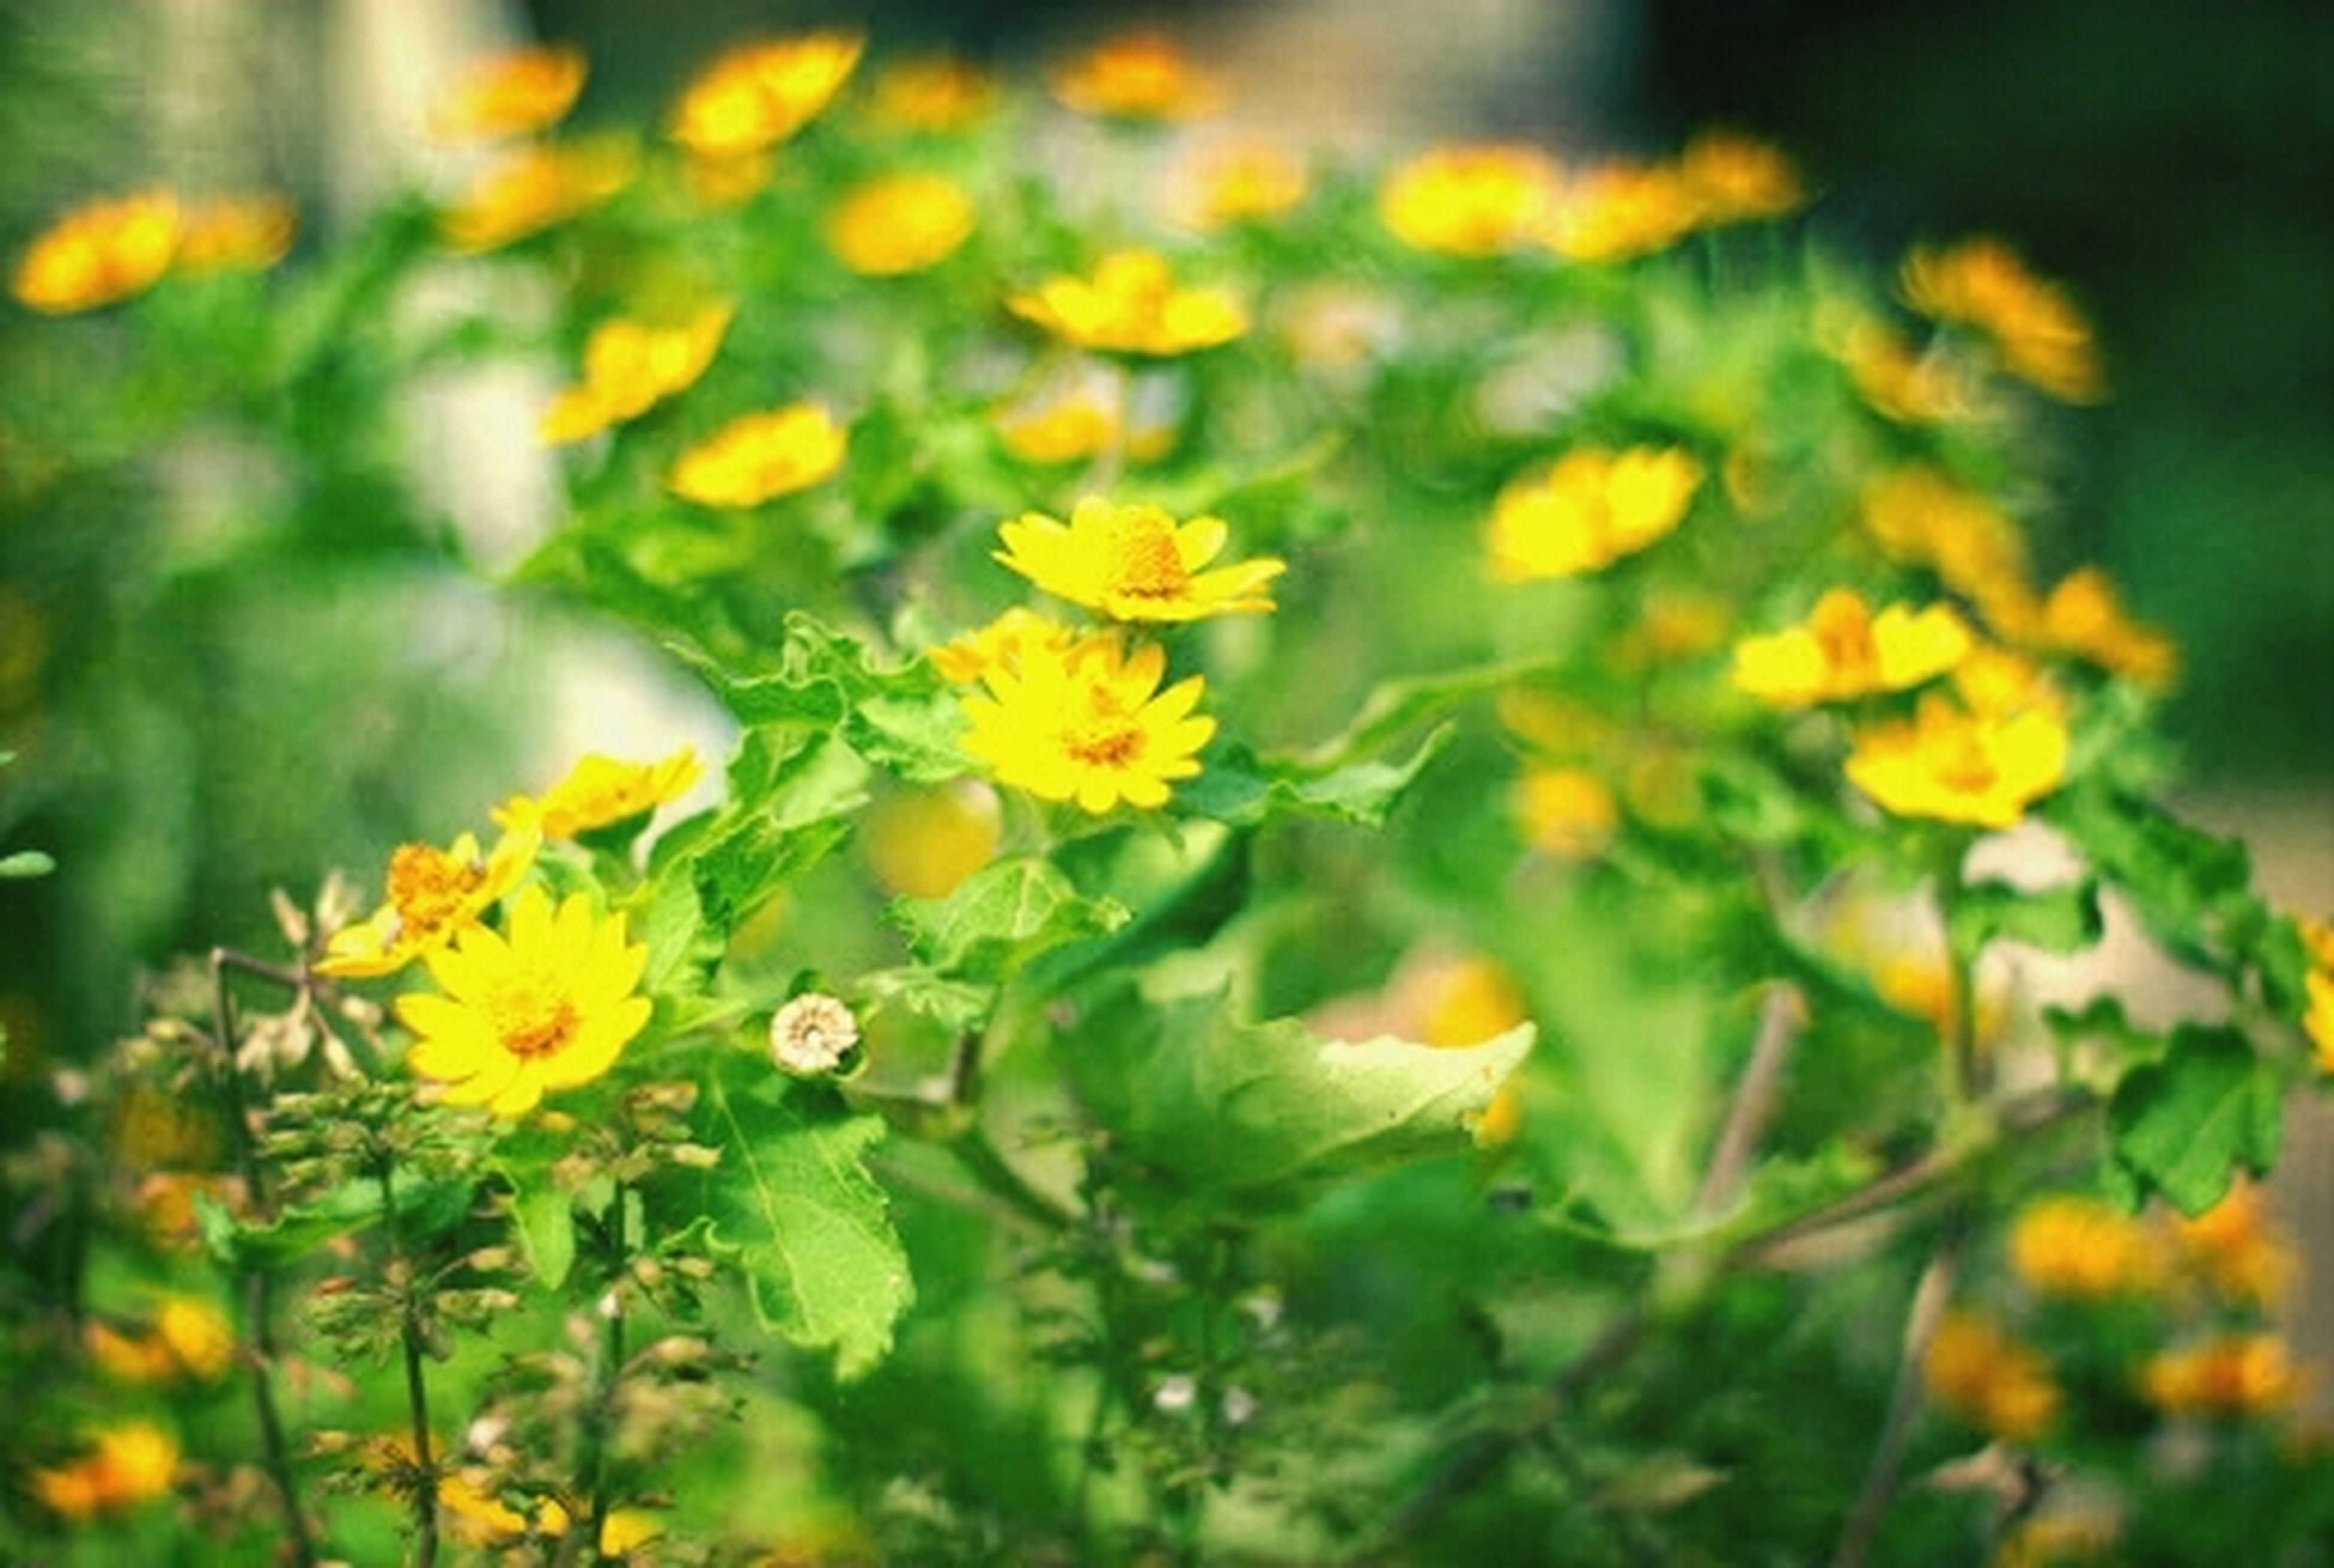 flower, freshness, yellow, growth, fragility, petal, beauty in nature, flower head, blooming, plant, nature, focus on foreground, close-up, selective focus, in bloom, field, stem, outdoors, blossom, day